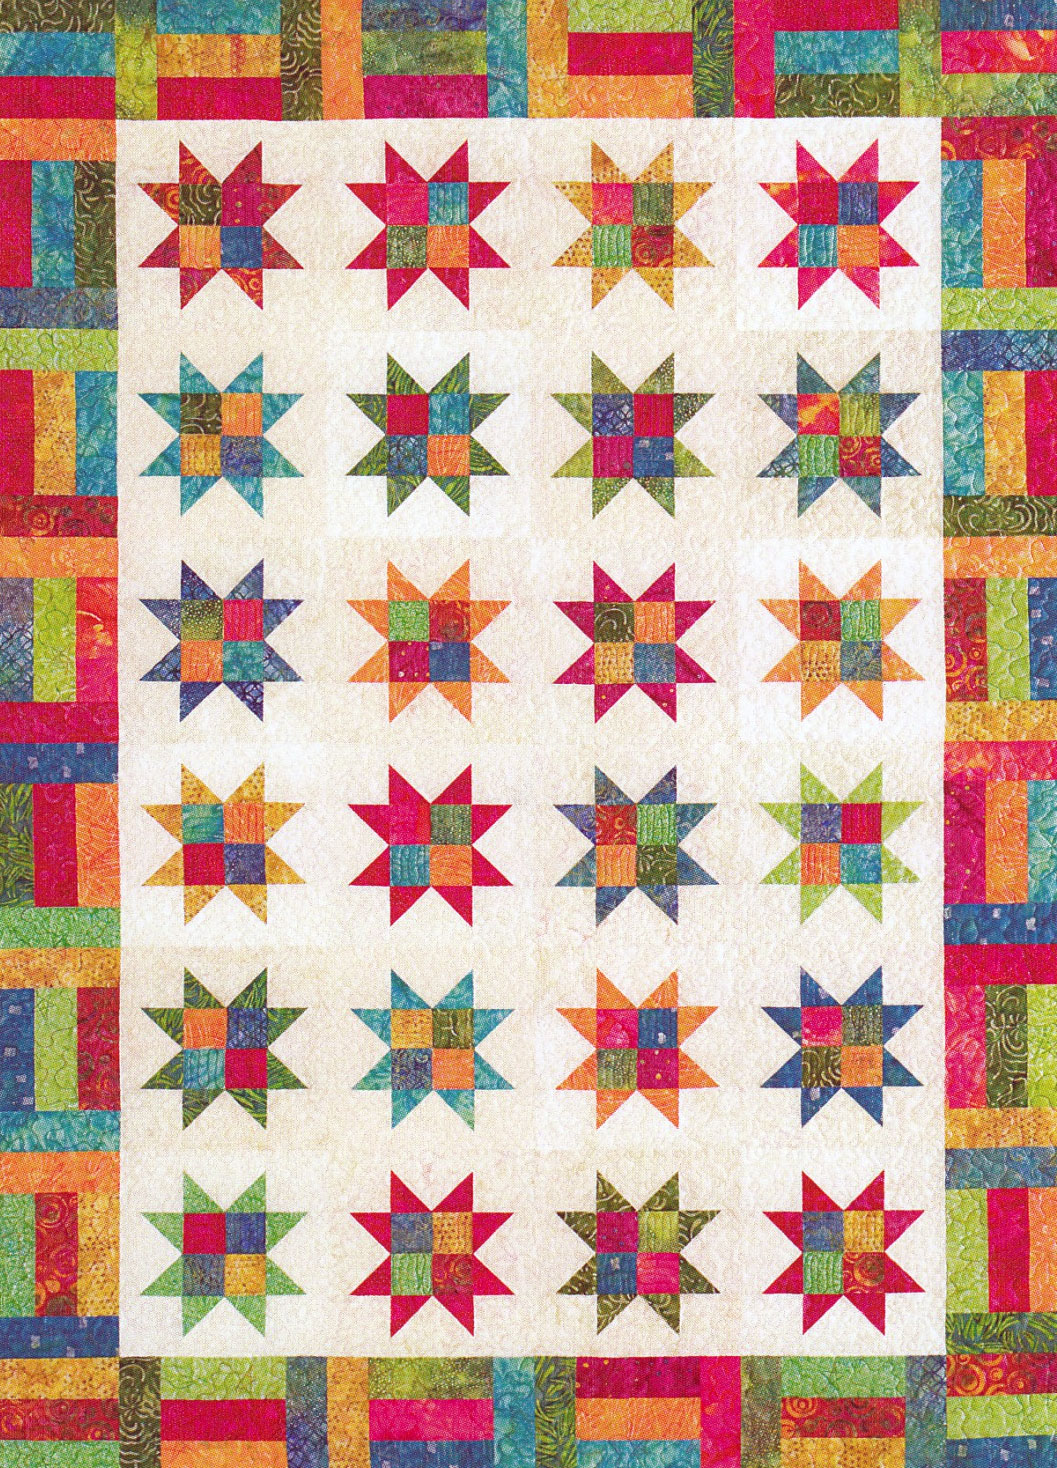 Stars-and-Strips-quilt-sewing-pattern-Atkinson-Designs-1